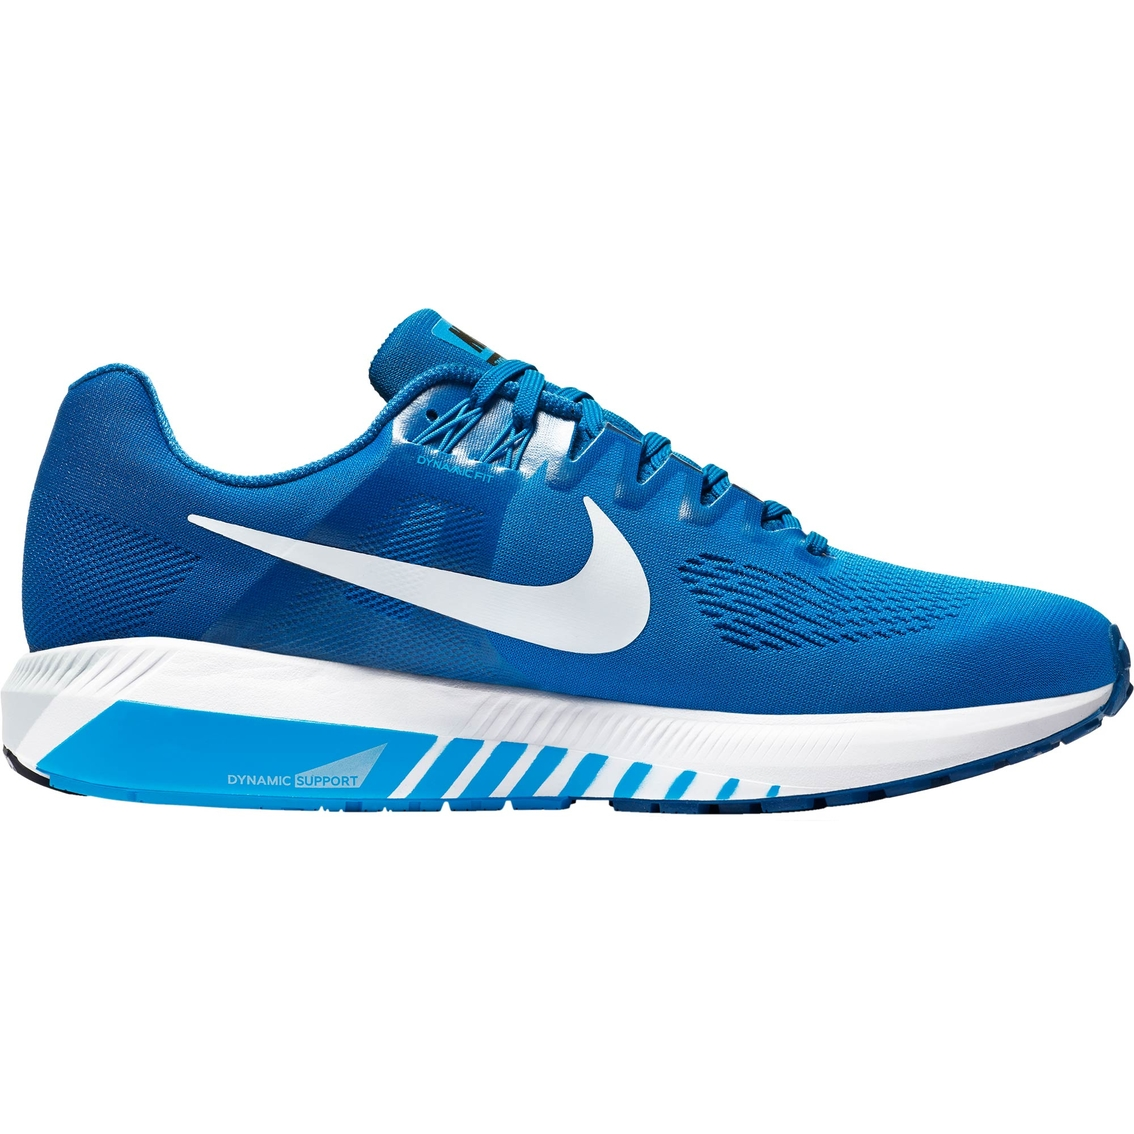 1a89e54c316c Nike Men s Air Zoom Structure 21 Running Shoes